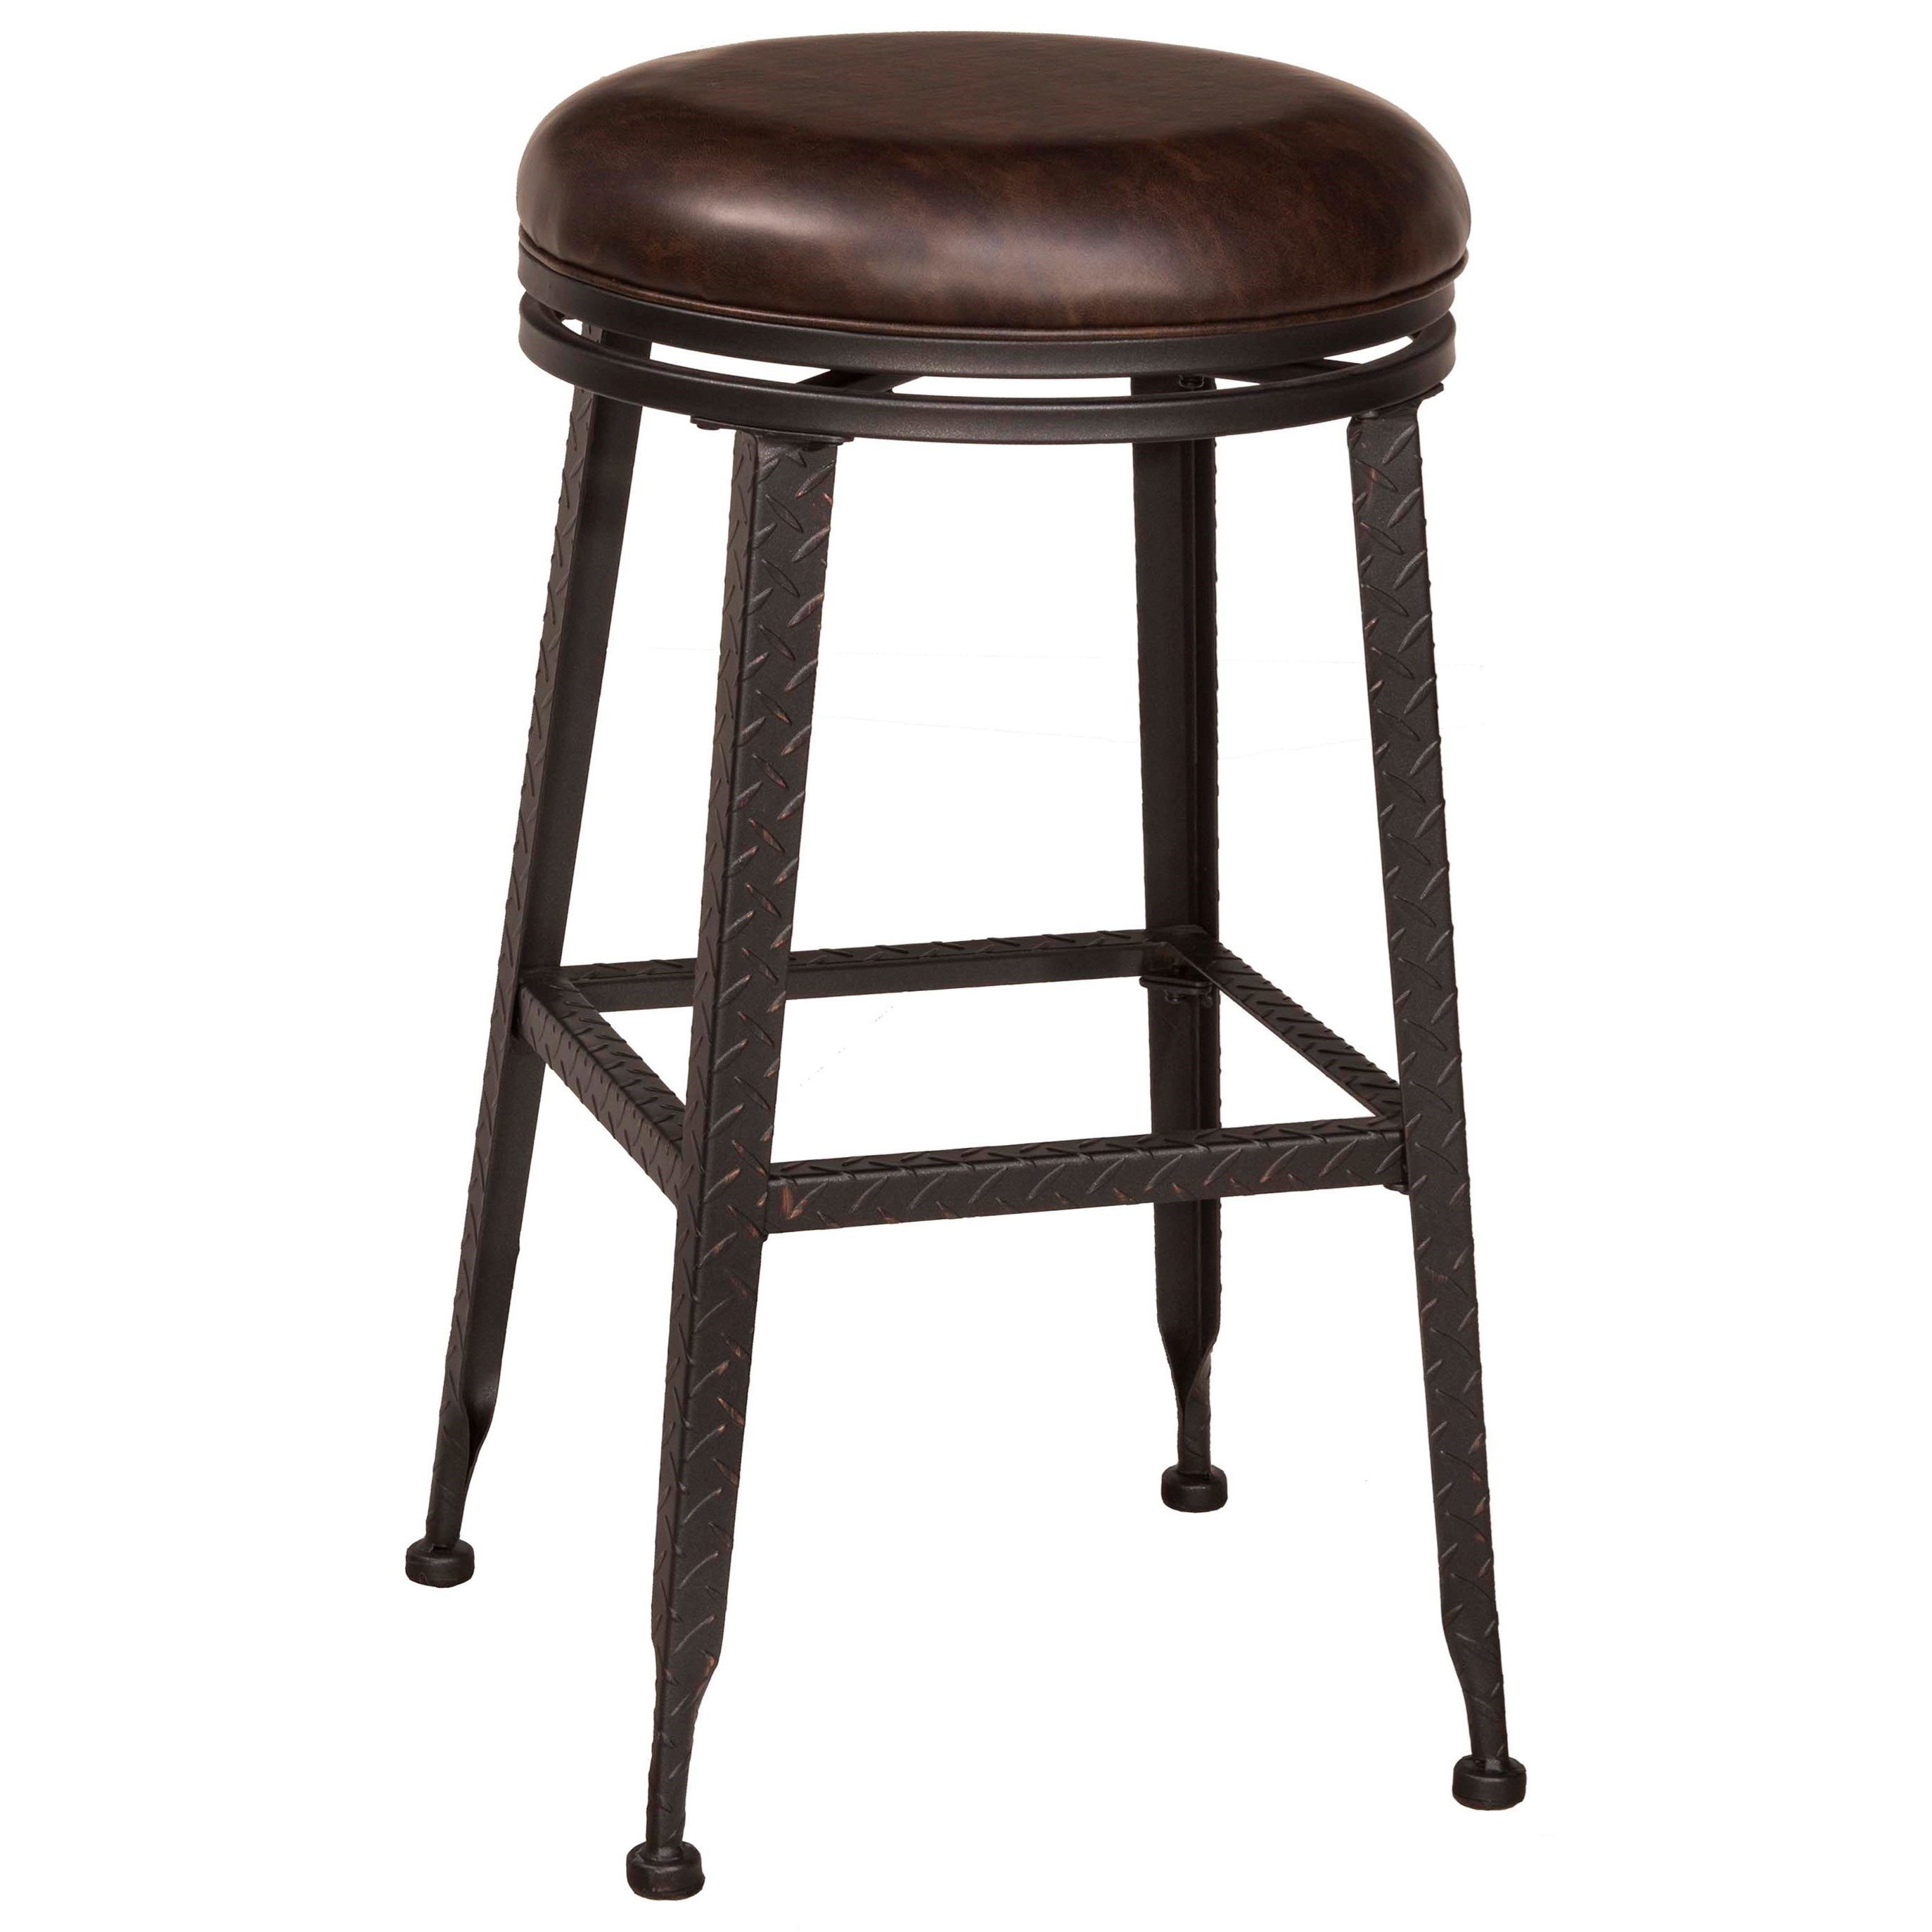 Hilale Backless Bar Stools Black Metal With Copper